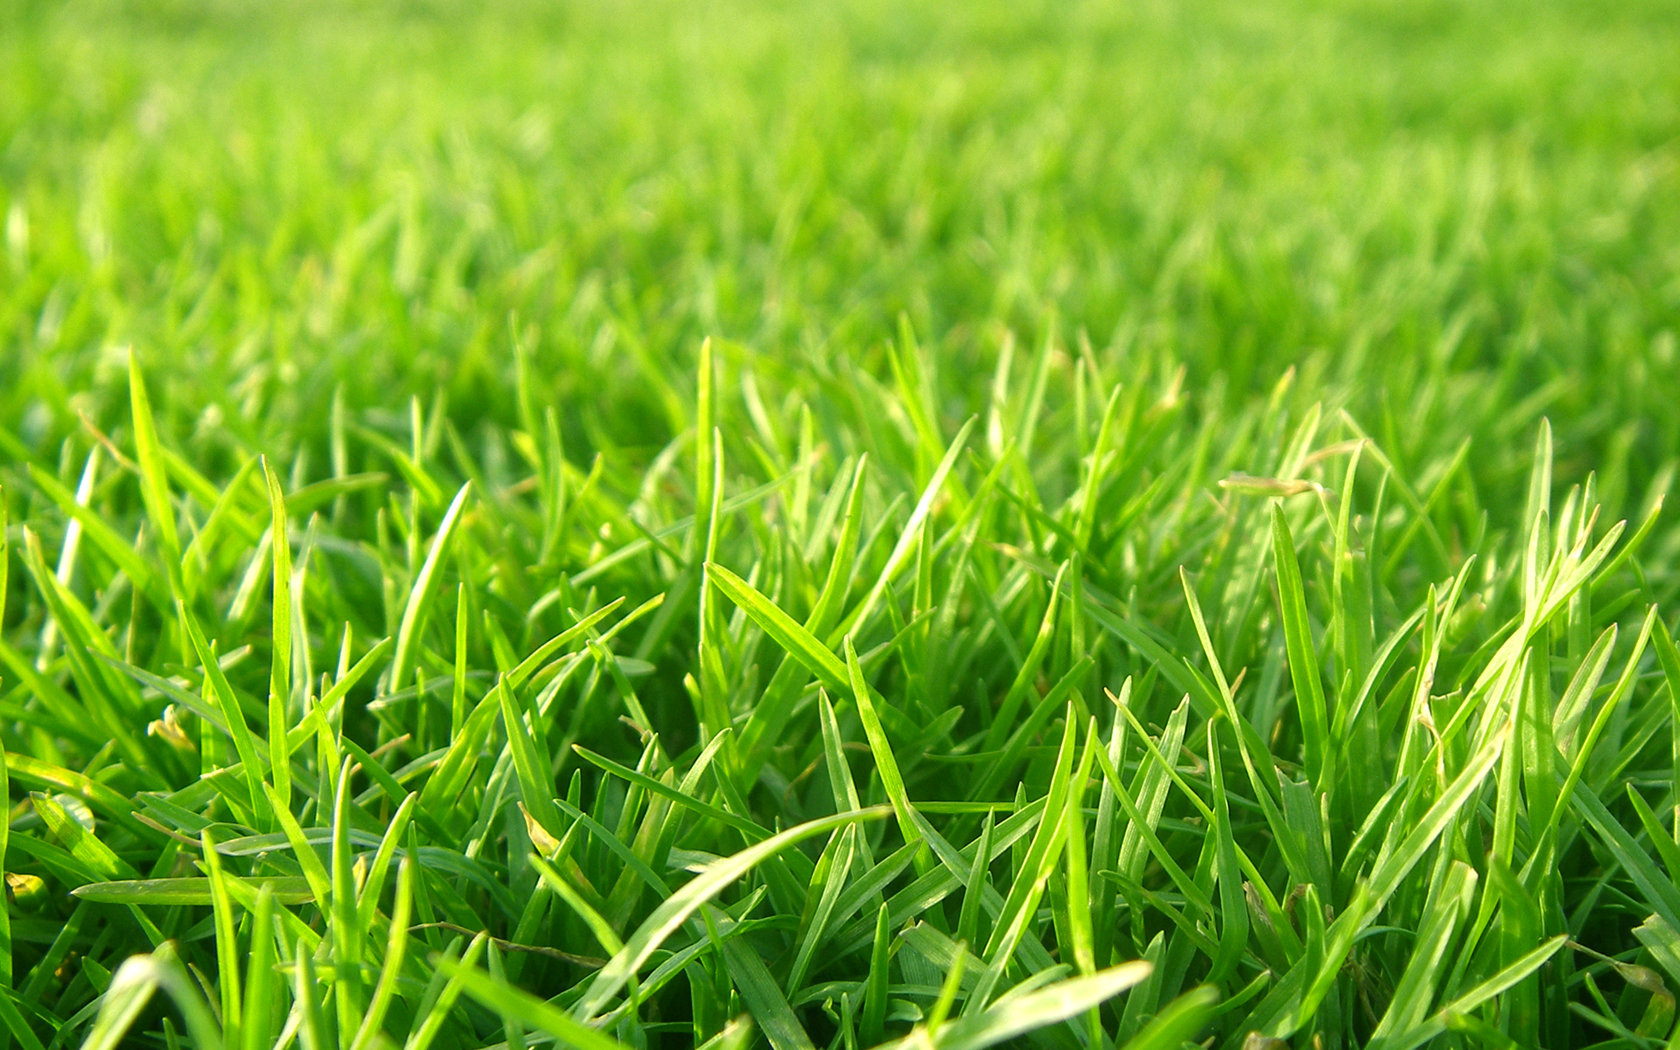 Grass Pictures